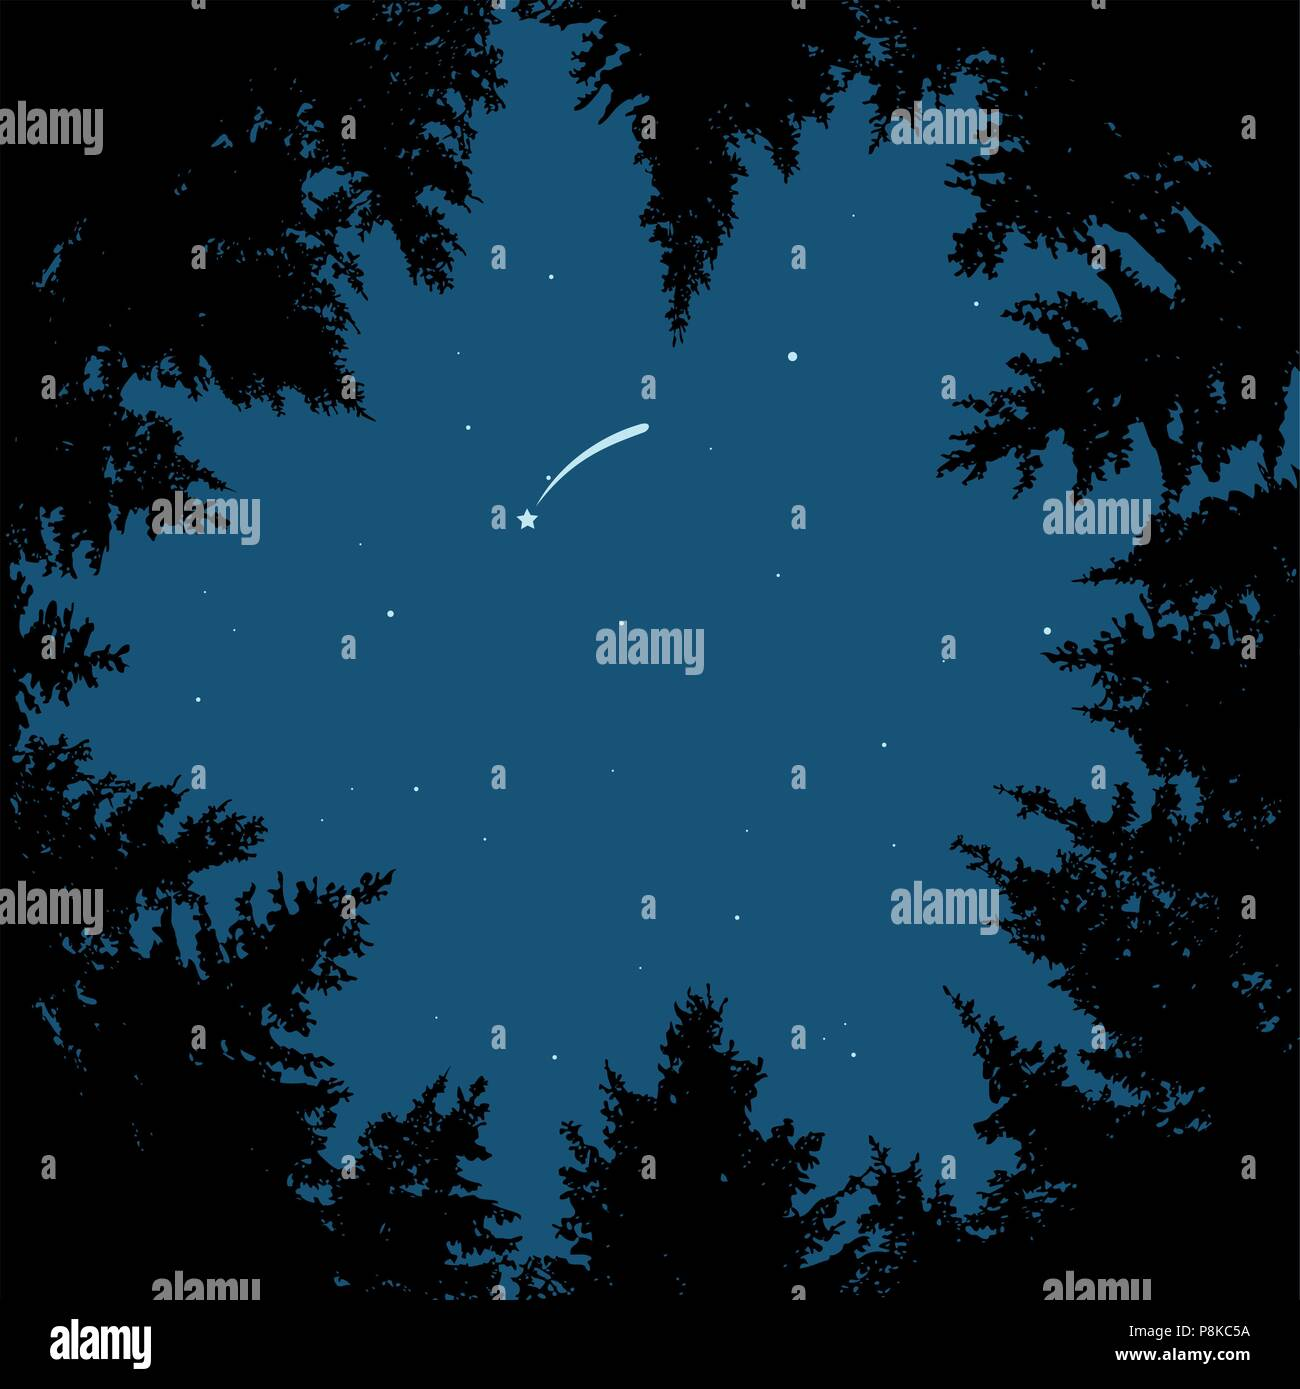 vector background of blue night sky with stars, comet or falling star and dark forest trees. circle of black pine trees forming copyspace Stock Vector